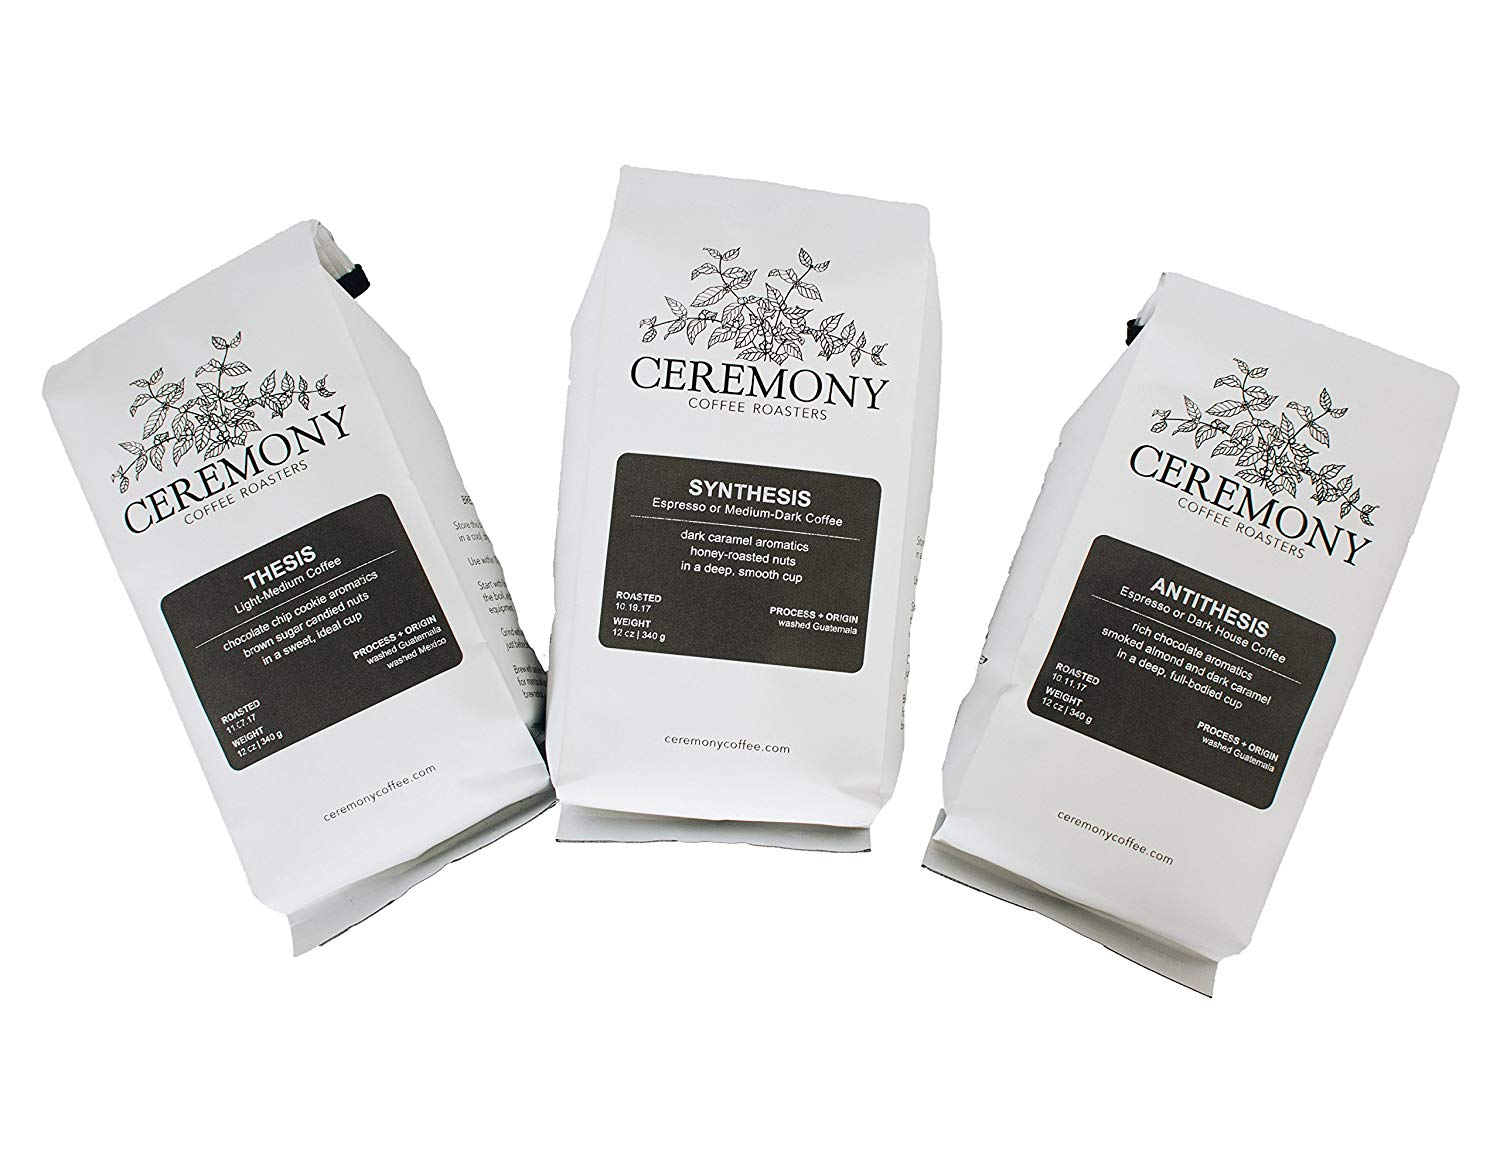 Ceremony Coffee Roasters - House Coffees Roast Variety Pack - Specialty Whole Bean or Ground Coffee- 3 x 12oz bags (Drip - Medium Grind)